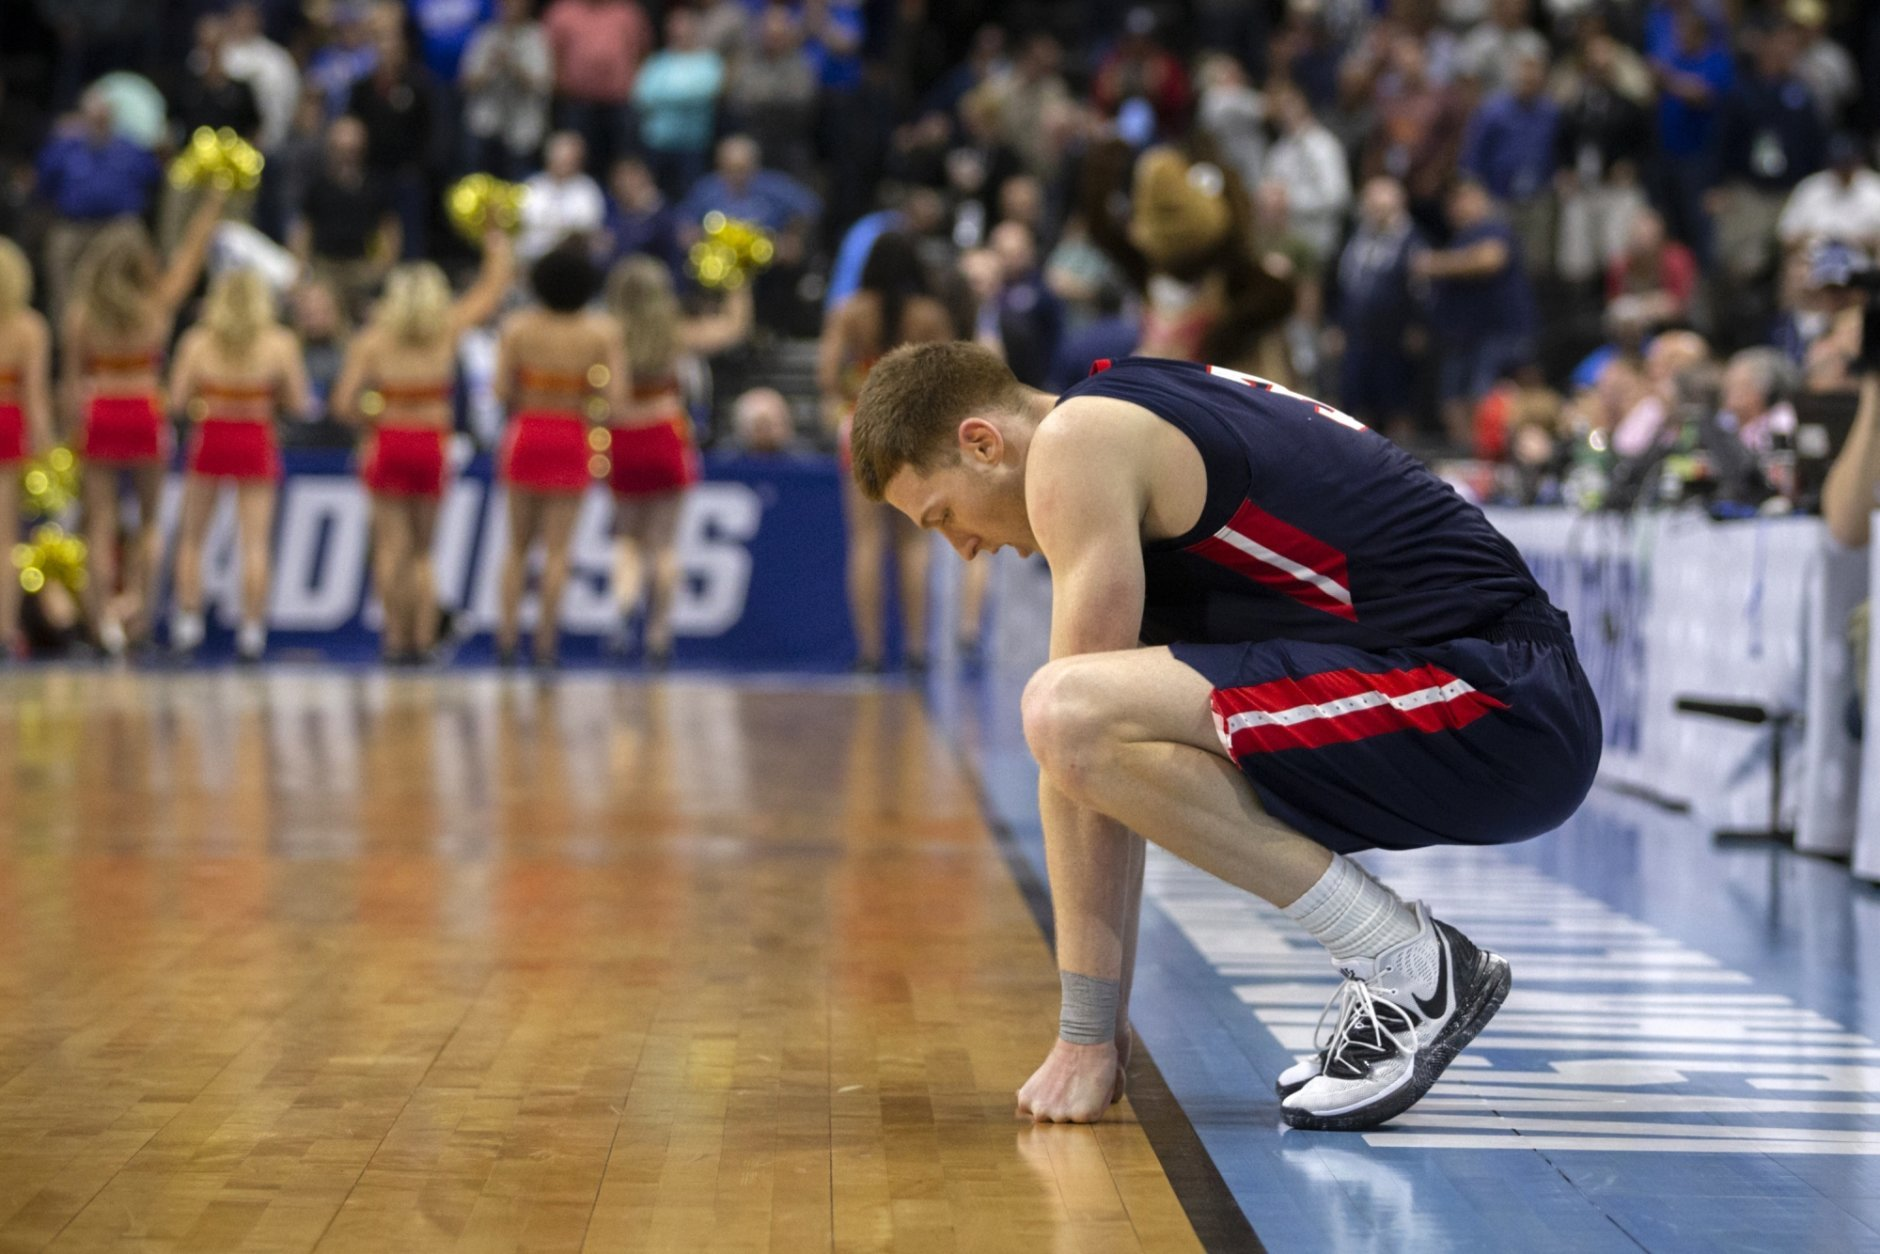 Belmont guard Dylan Windler reacts after missing a mid-court shot against Maryland as time expired in a first-round game in the NCAA men's college basketball tournament in Jacksonville, Fla. Thursday, March 21, 2019. (AP Photo/Stephen B. Morton)